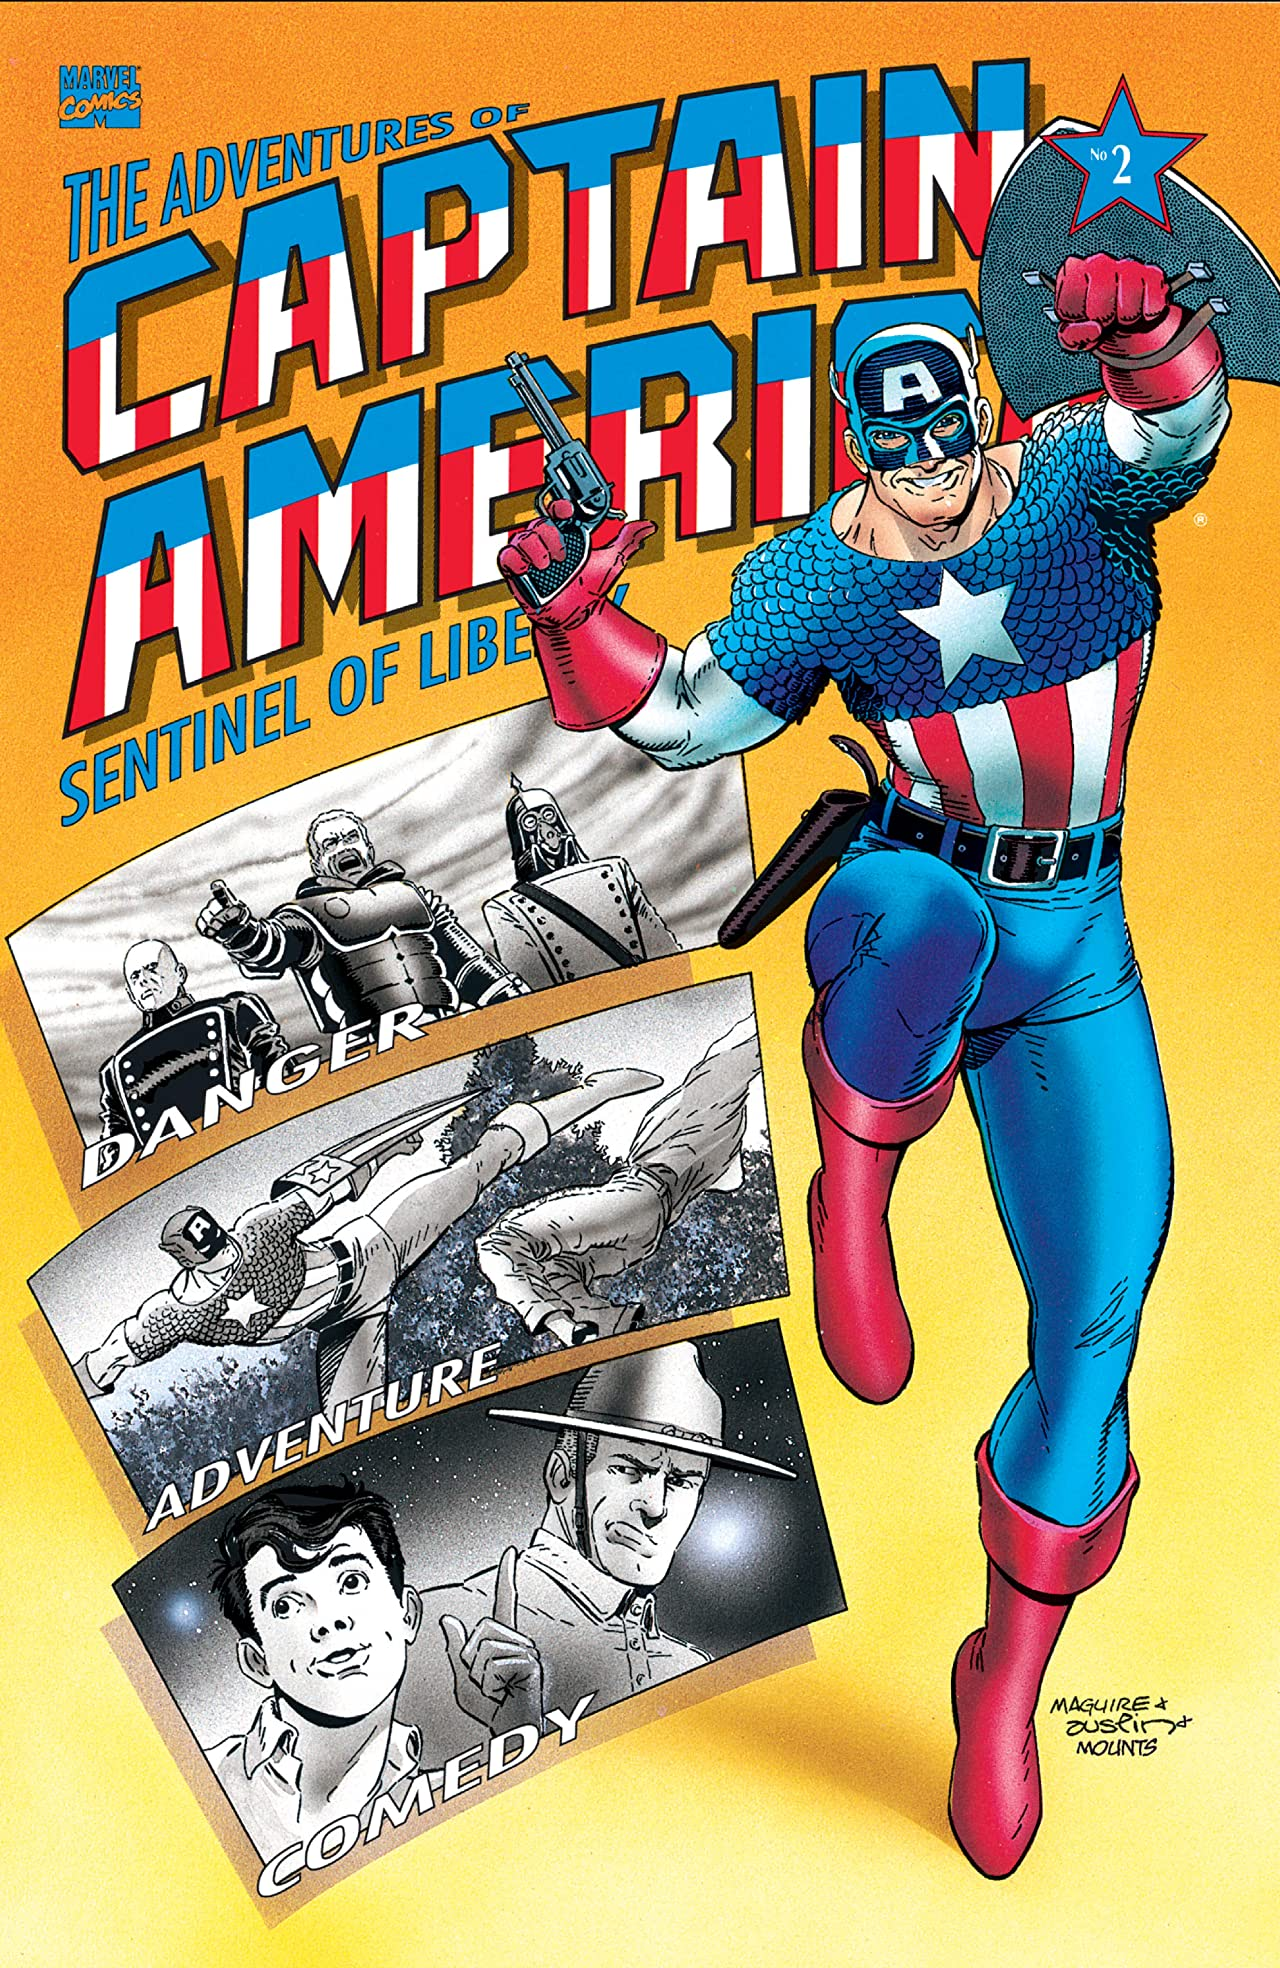 Adventures of Captain America (1991-1992) #2 (of 4)